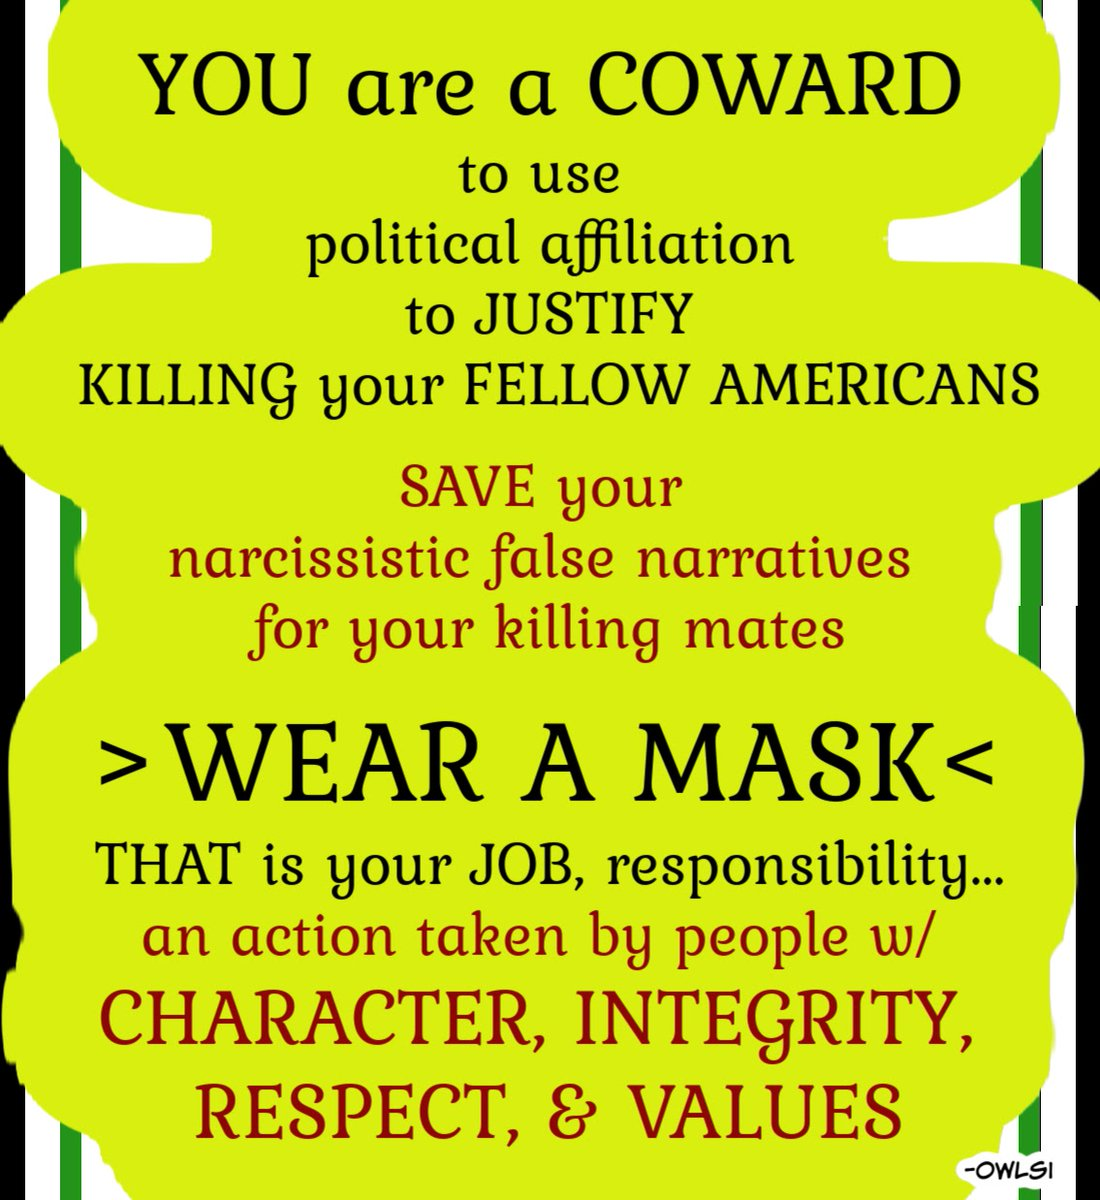 wearing a mask is also a CHANCE a chance 2 love a chance 2 live a chance 2 help a chance 2 TEAM a chance 4 PROGRESS  I'M SOOOO THANKFUL for this chance  ANYONE making MASK-WEARING a political thing??? the truest anti-USA IDIOT w/o a cause  #idiotsGONEwild #BLM #LGBTQ #MaskUp